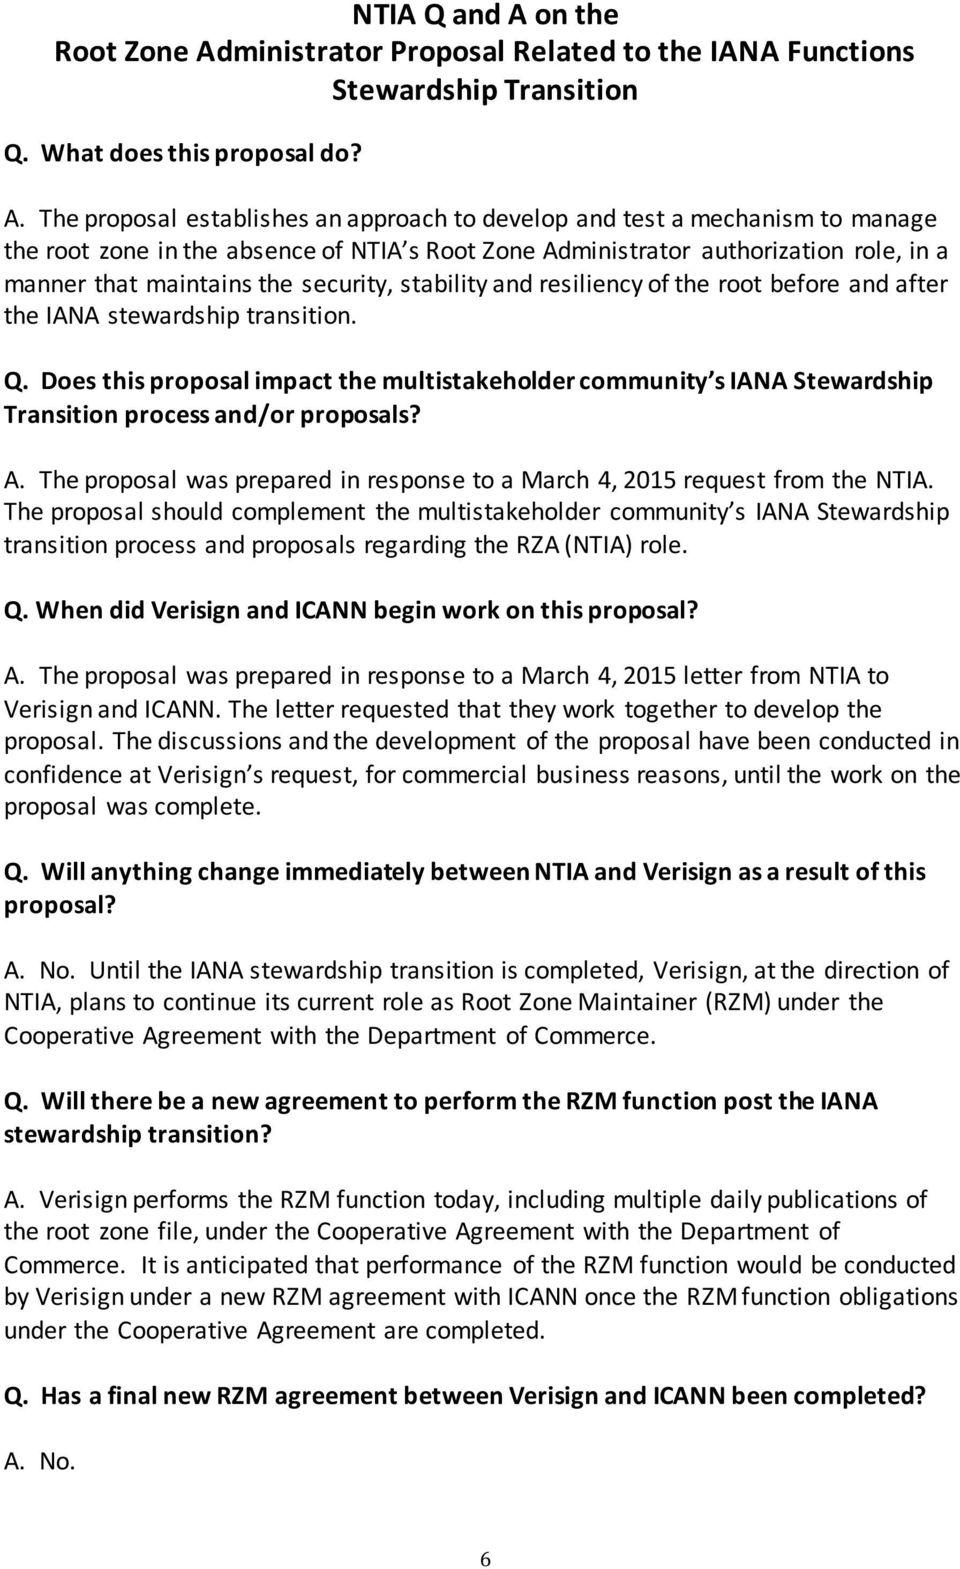 ministrator Proposal Related to the IANA Functions Stewardship Transition Q. What does this proposal do? A.